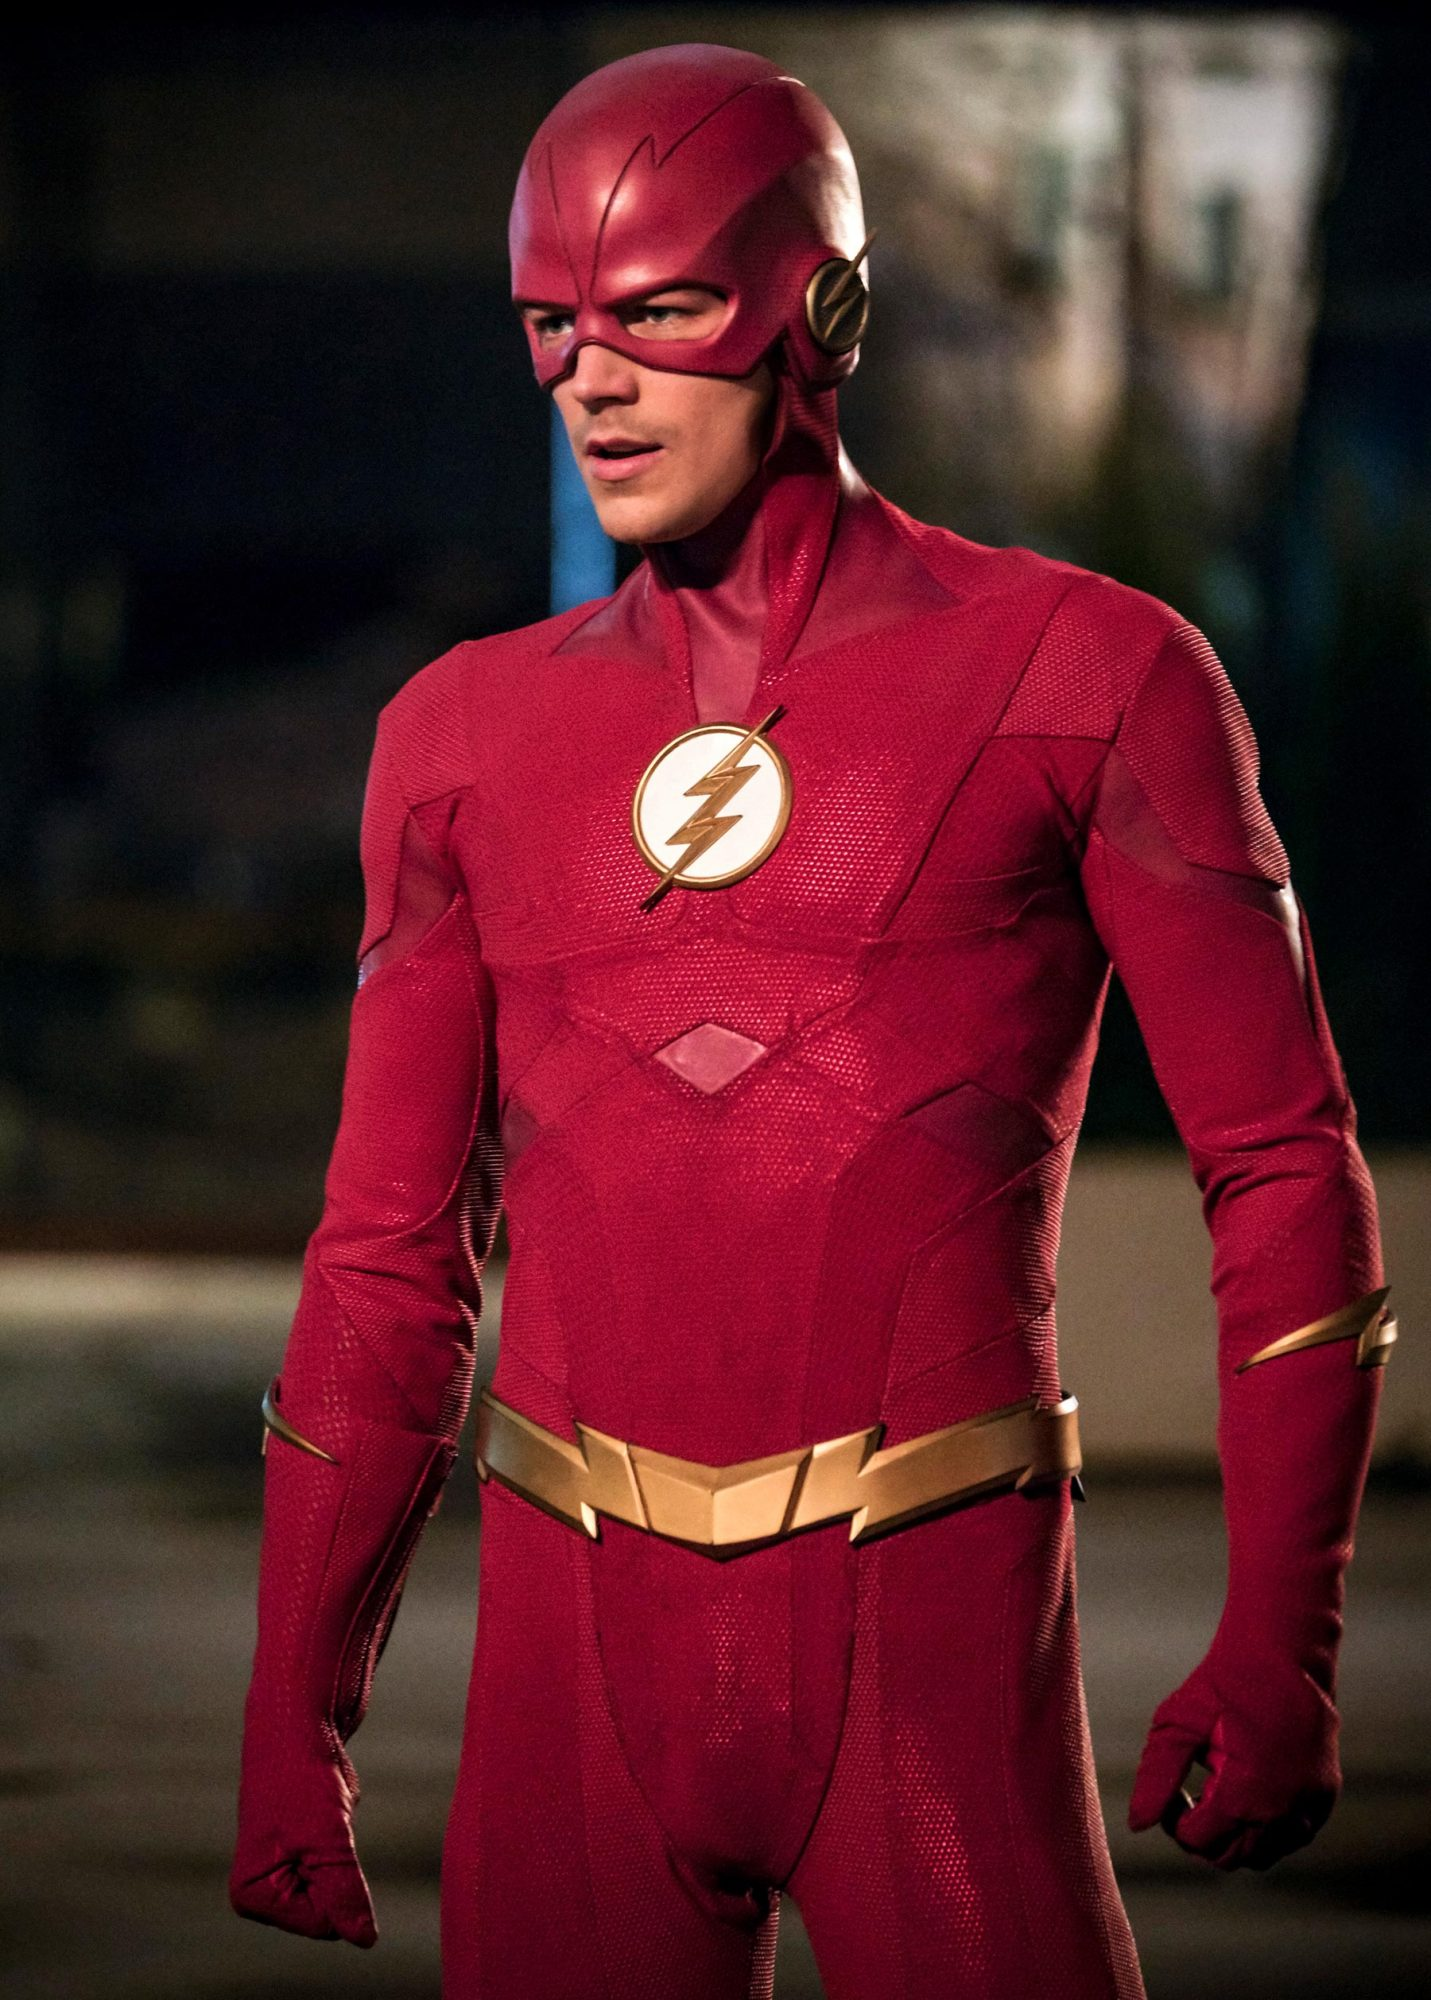 The Flash (Season 6)